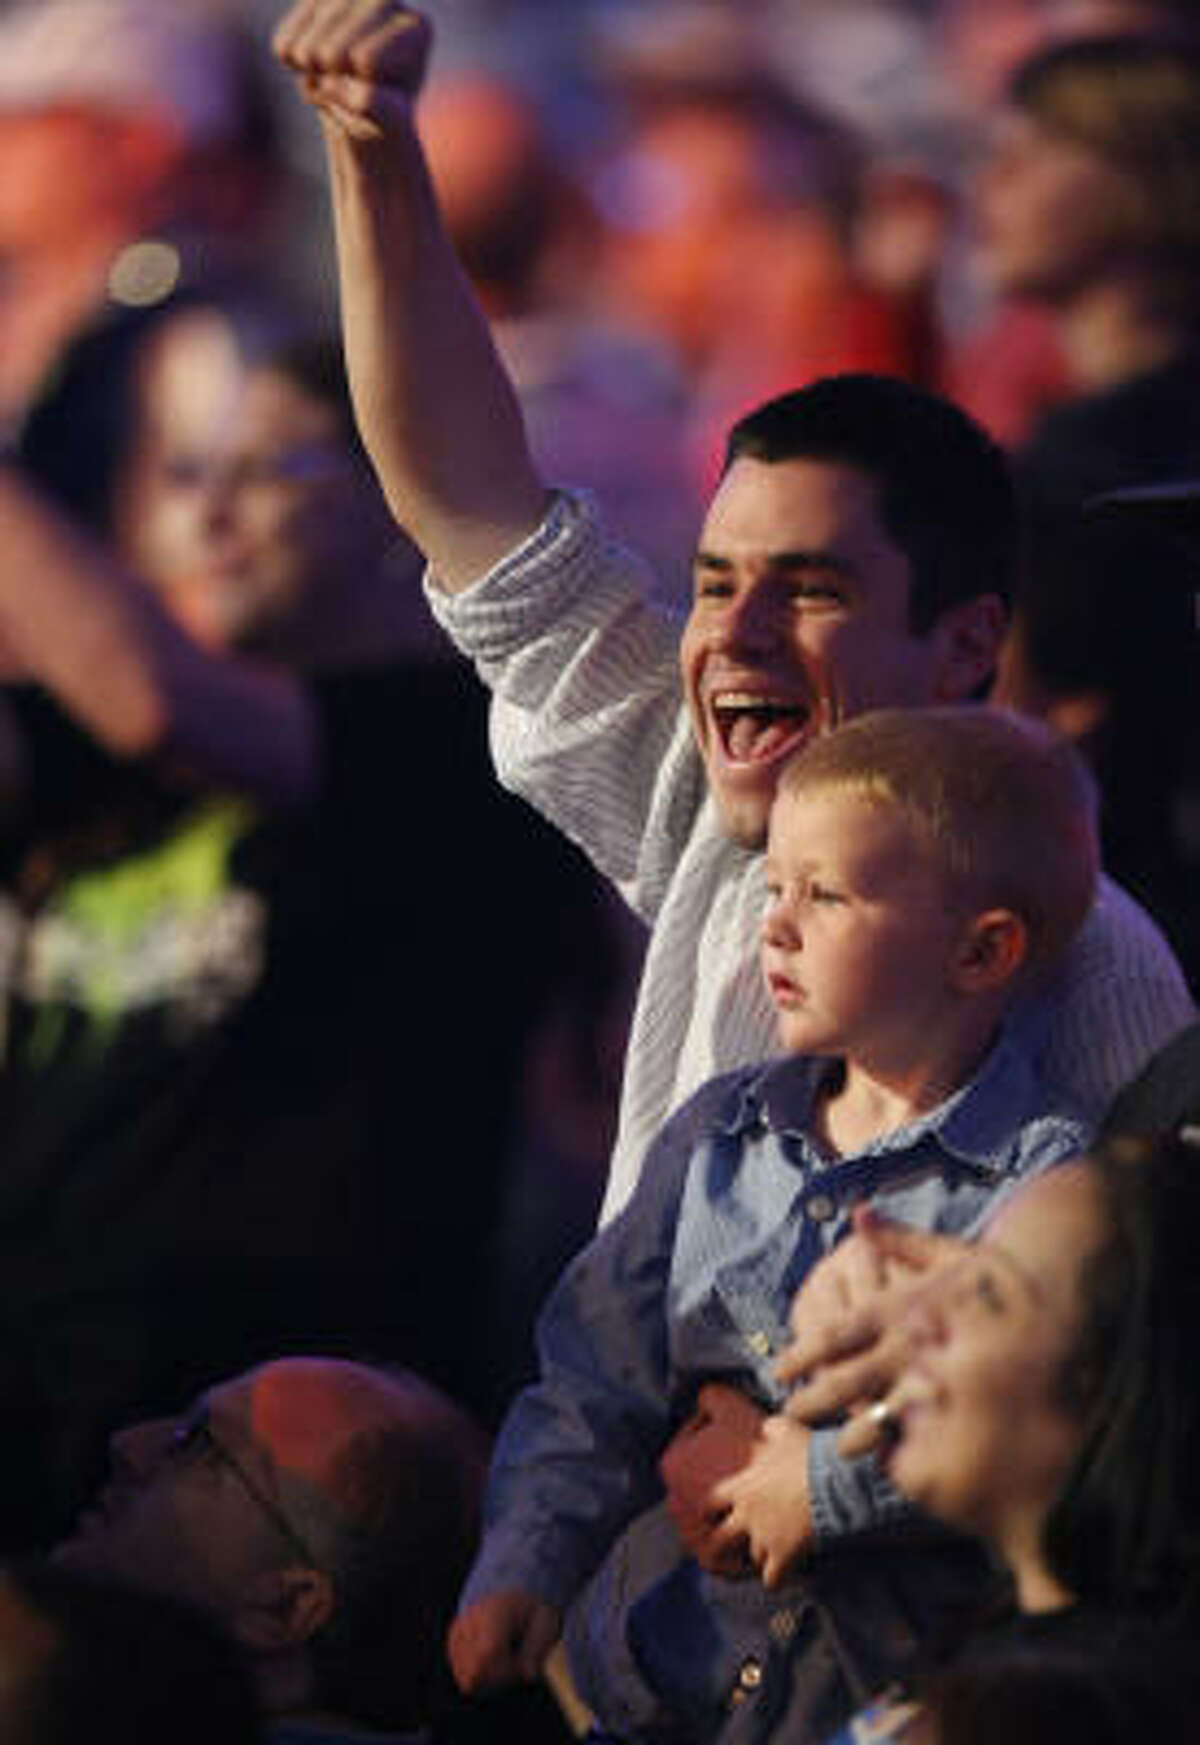 Andrew Herbert, 26, top, and his son Jacob Herbert, 5, sing along to the song Cowboy by recording artist Kid Rock during the 25th anniversary of Wrestlemania held at Reliant Stadium.